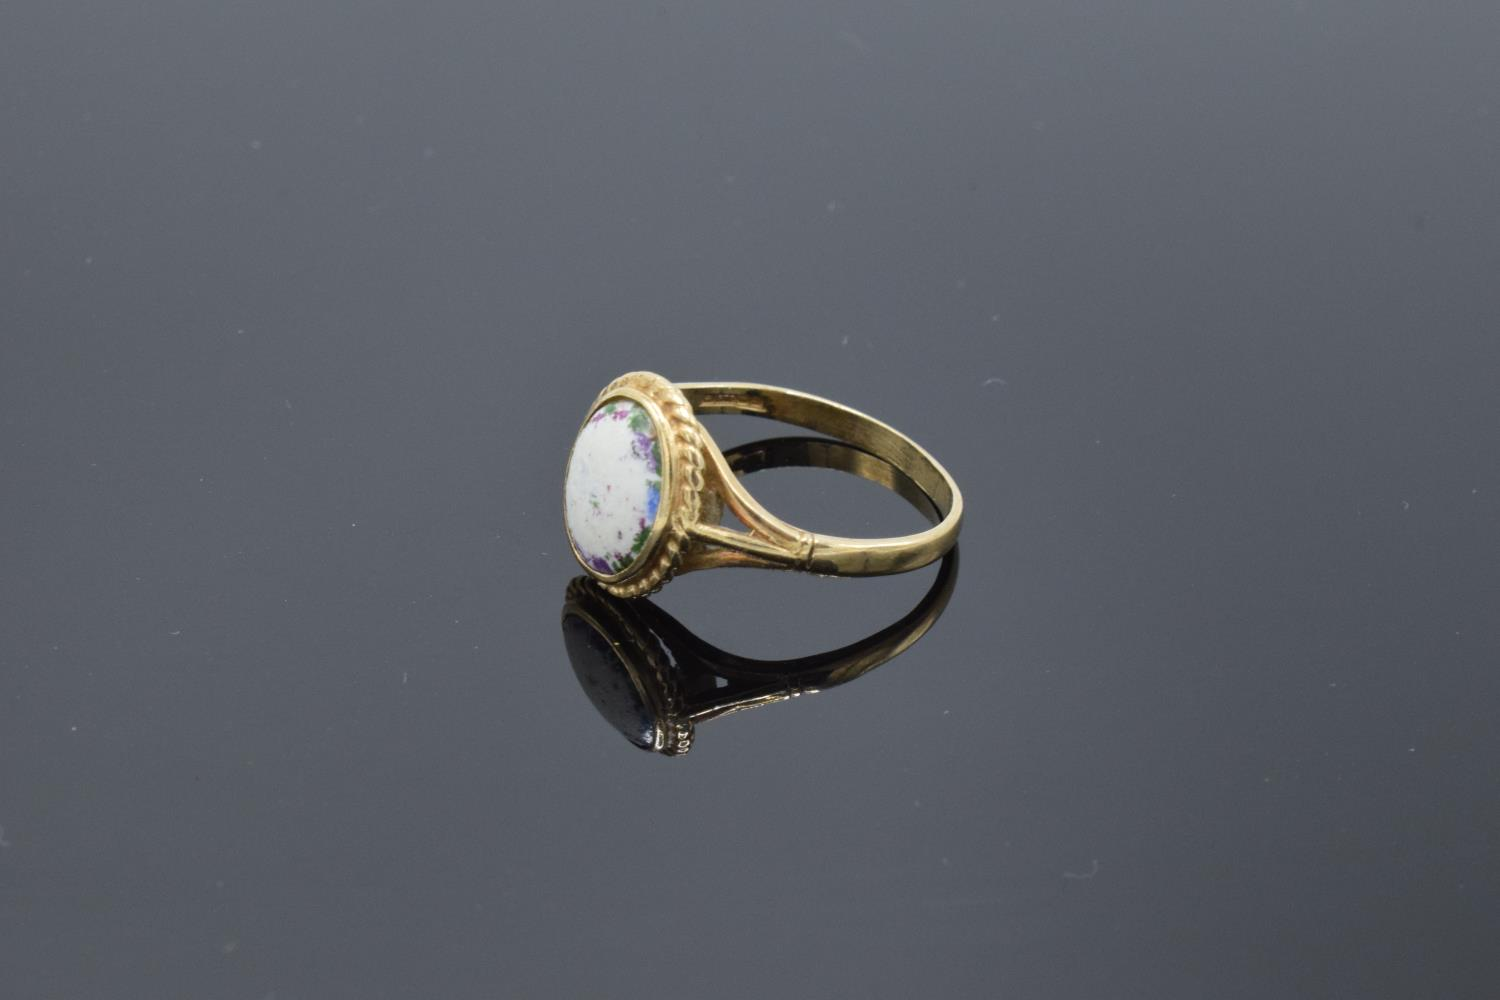 9ct gold ring set with a oval stone. 2.5 grams gross weight. UK size S. Full hallmarks.